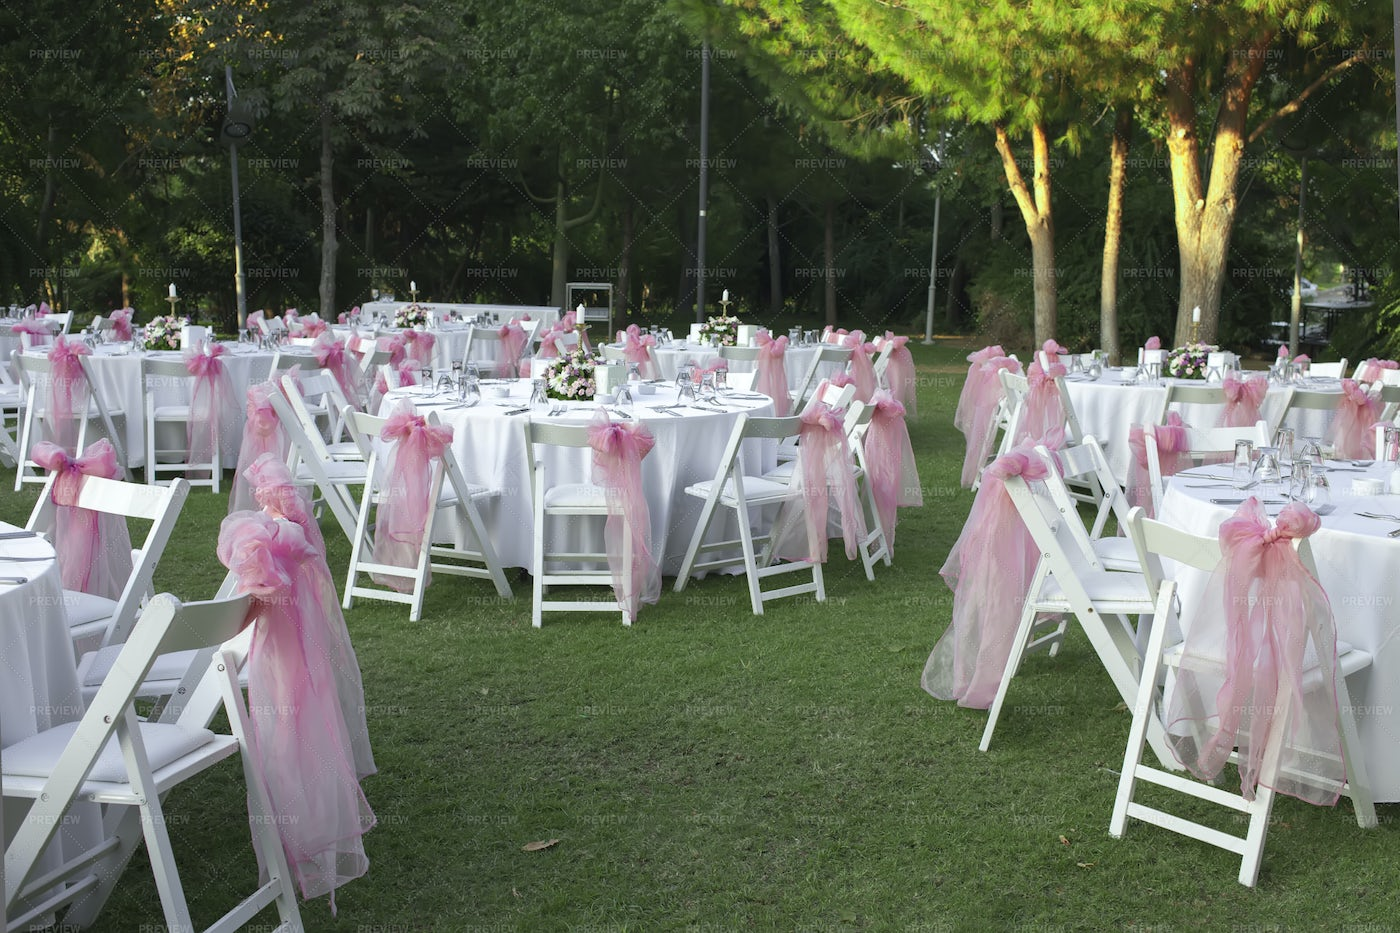 Garden Wedding Reception Furniture: Stock Photos